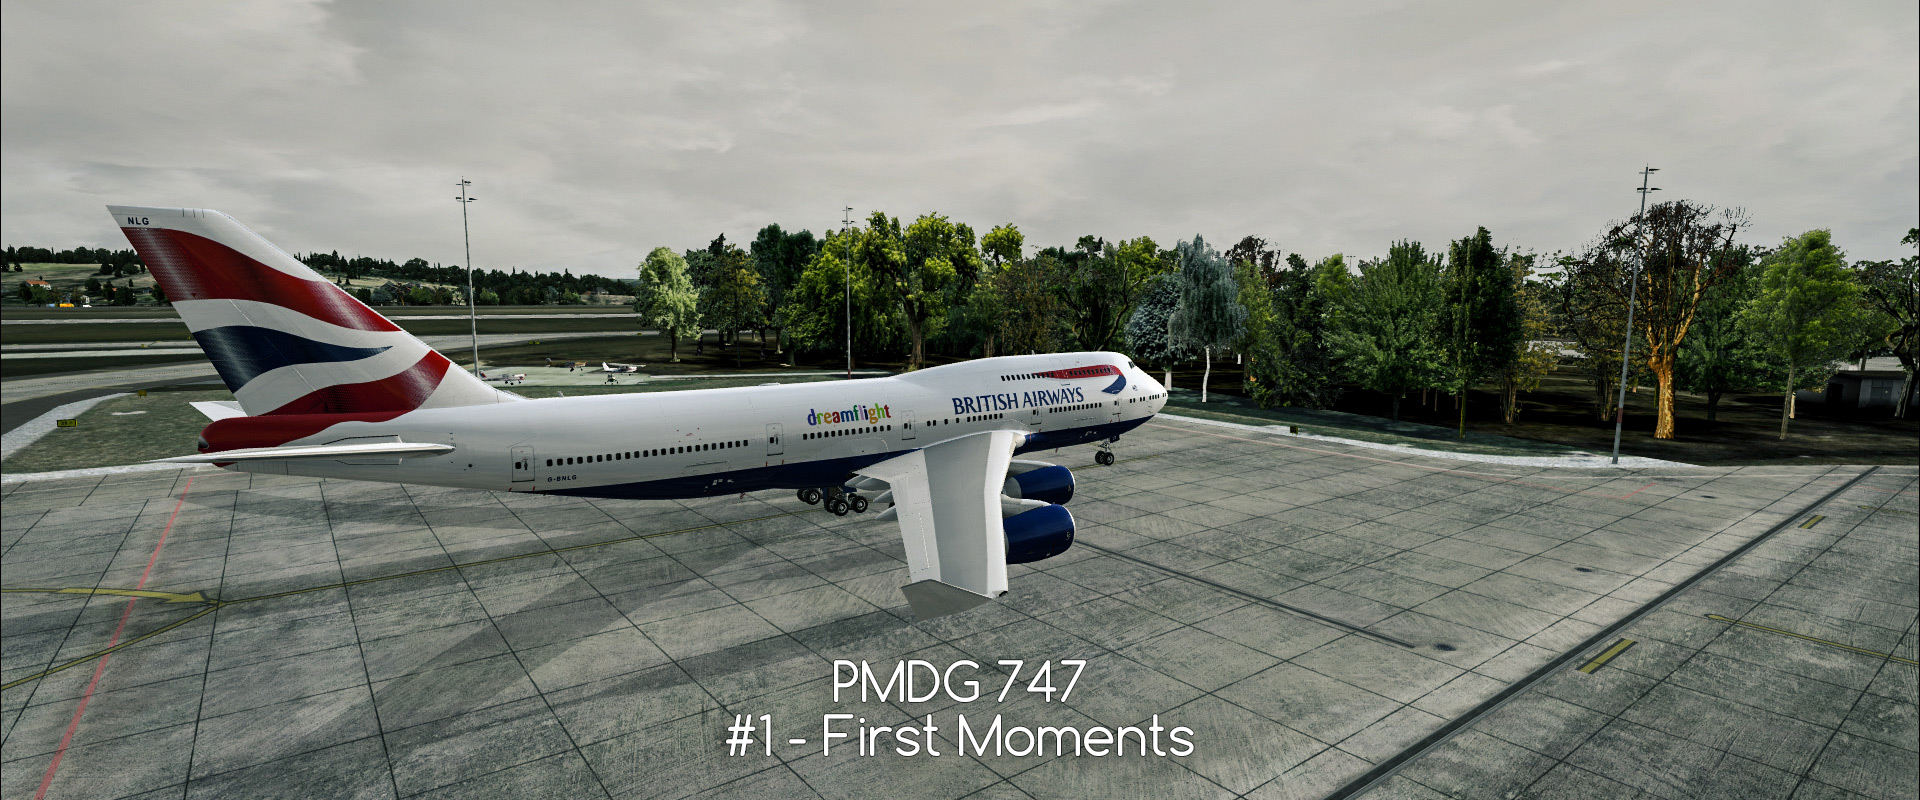 PMDG 747 #1 - my first flight